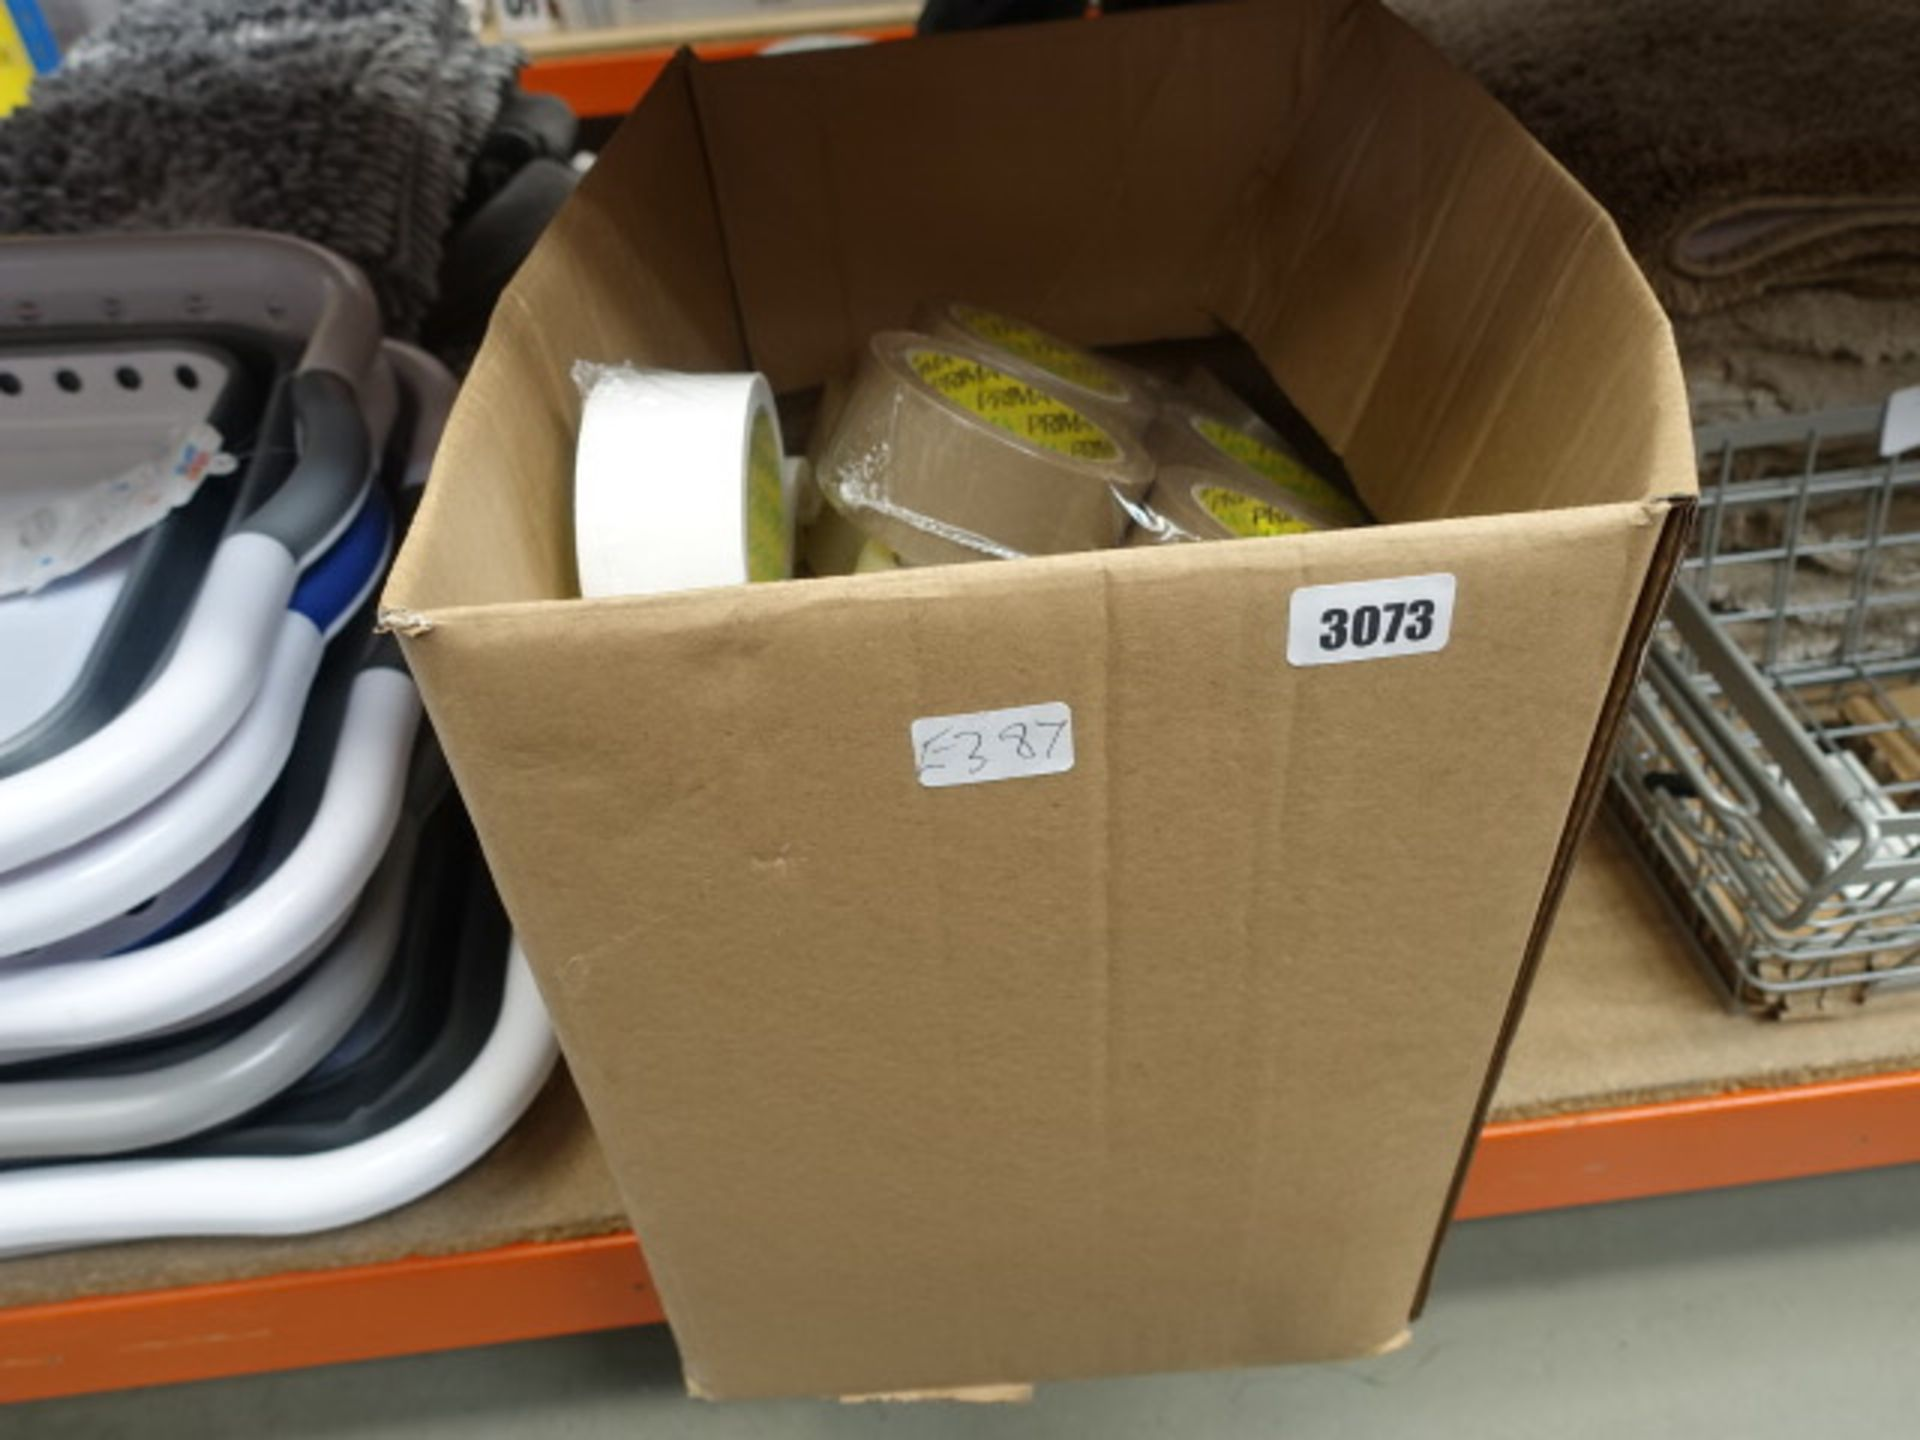 Lot 3073 - Box containing various tape, duct tape, sellotape, etc